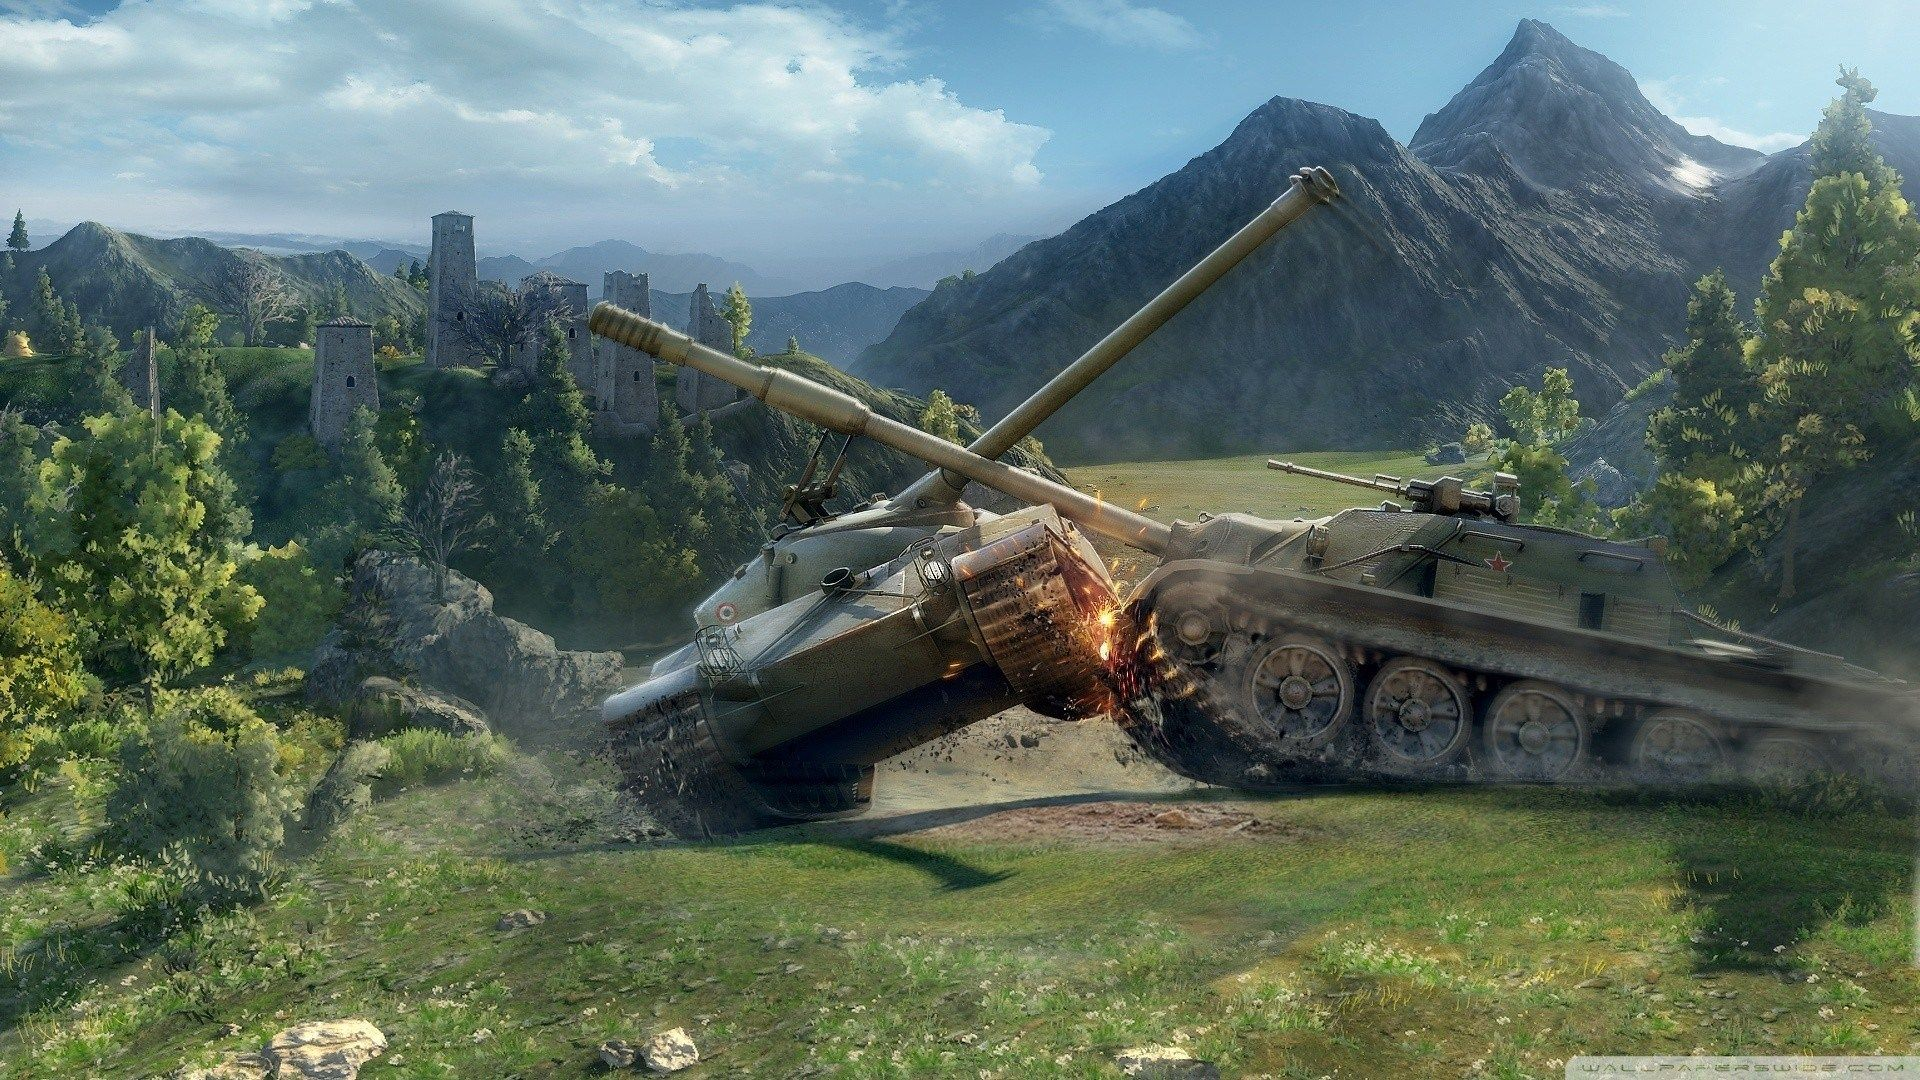 1920x1080 Px Hd Wallpaper World Of Tanks By Lashon London For